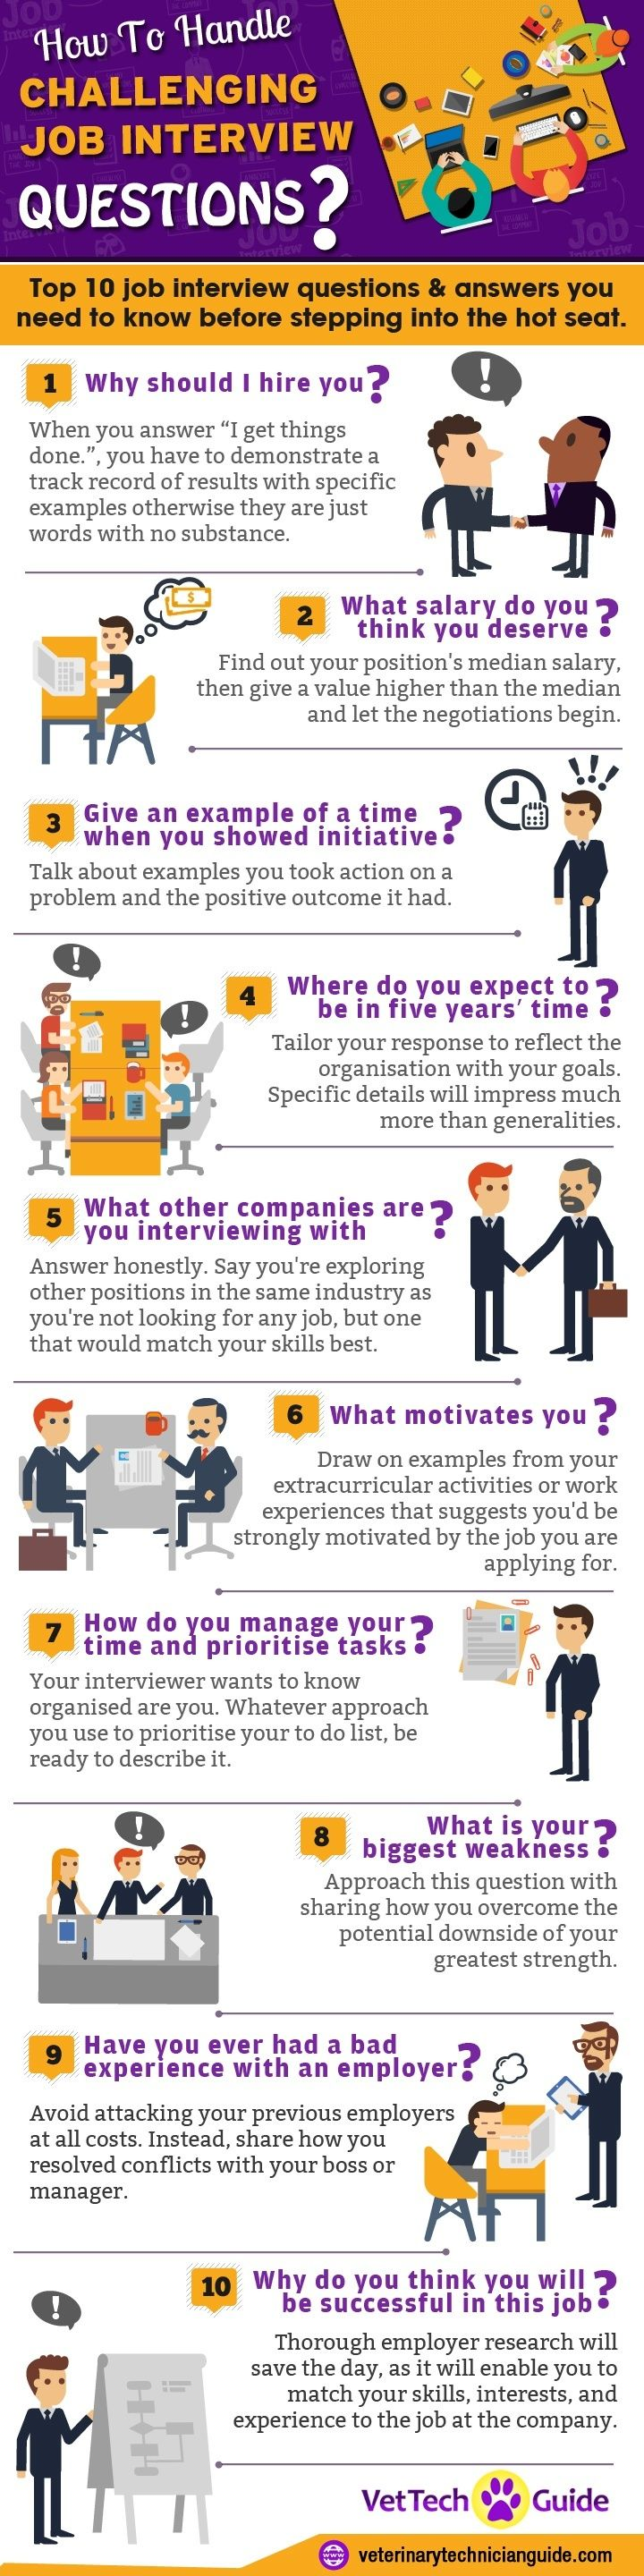 best ideas about top interview questions job tweet55 share6 share124 reddit stumble emailshares 185if you are interviewing